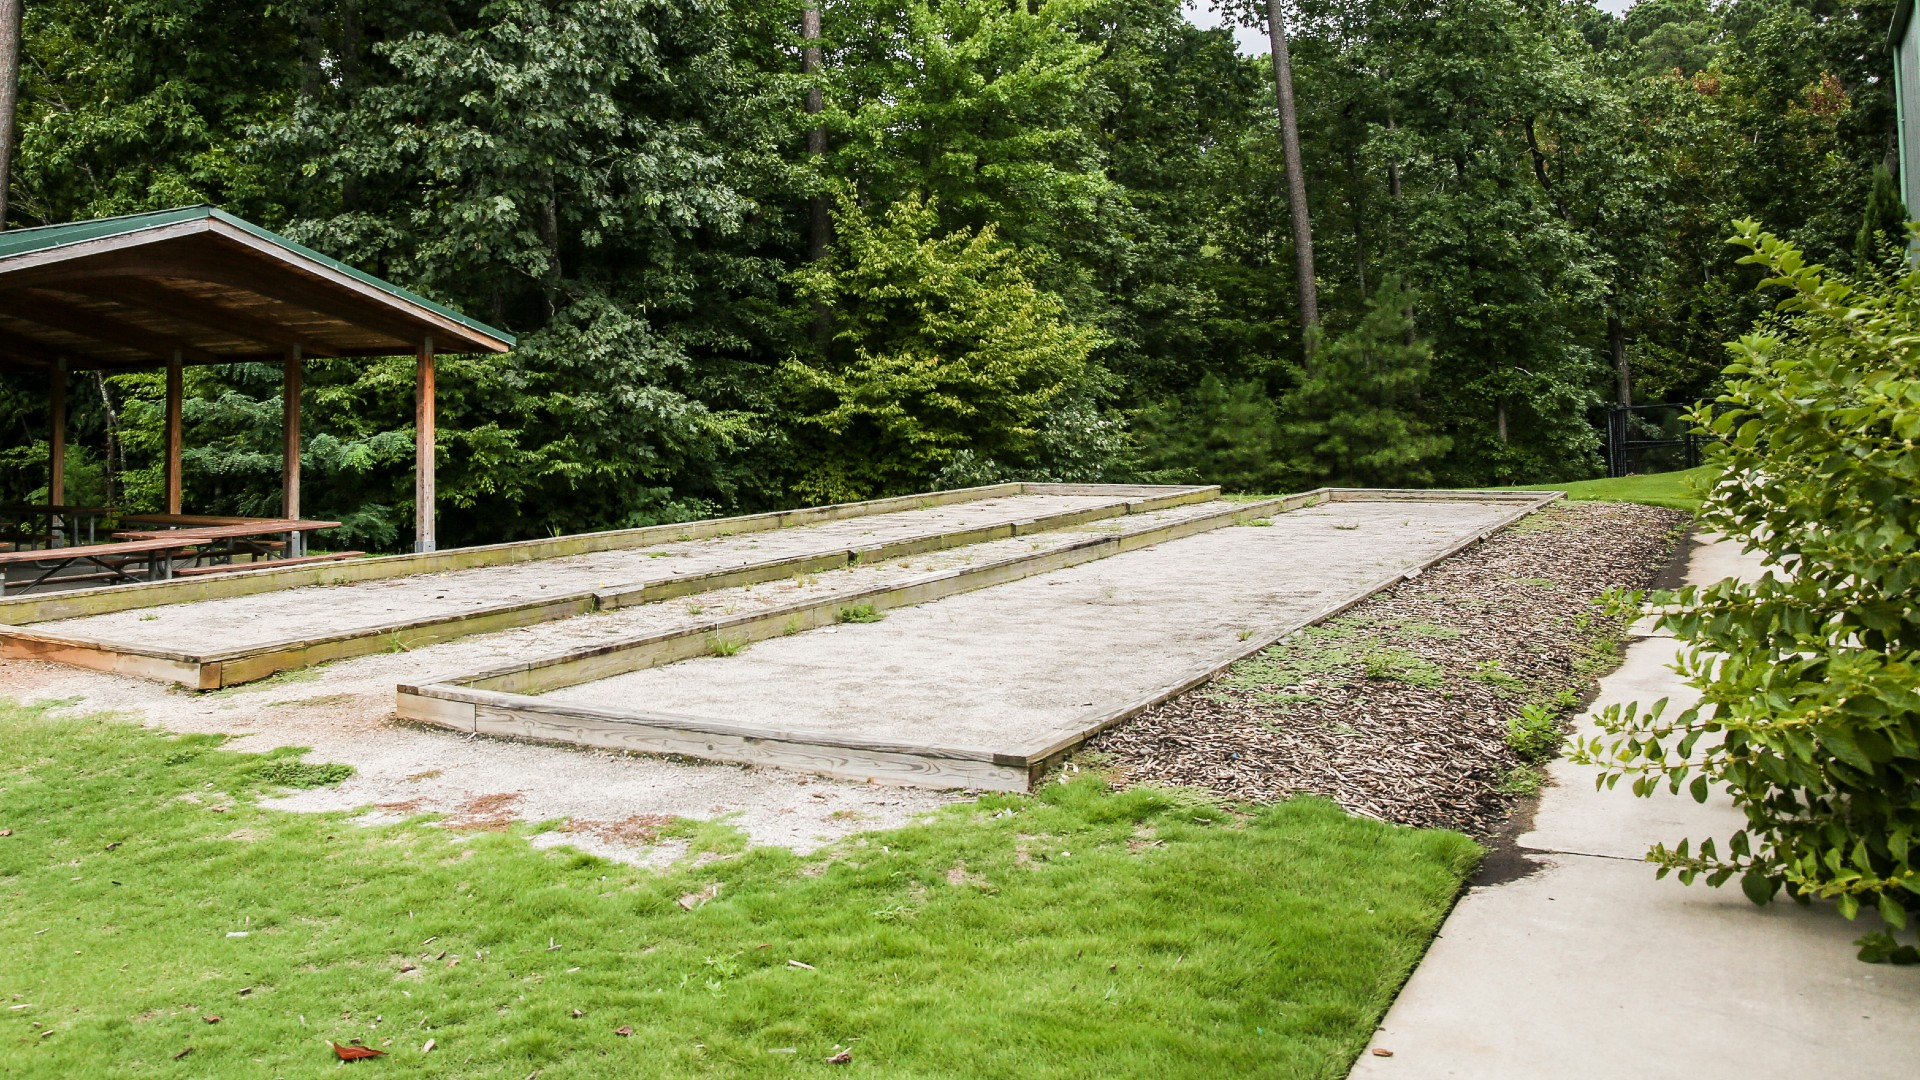 Two outdoor bocce courts